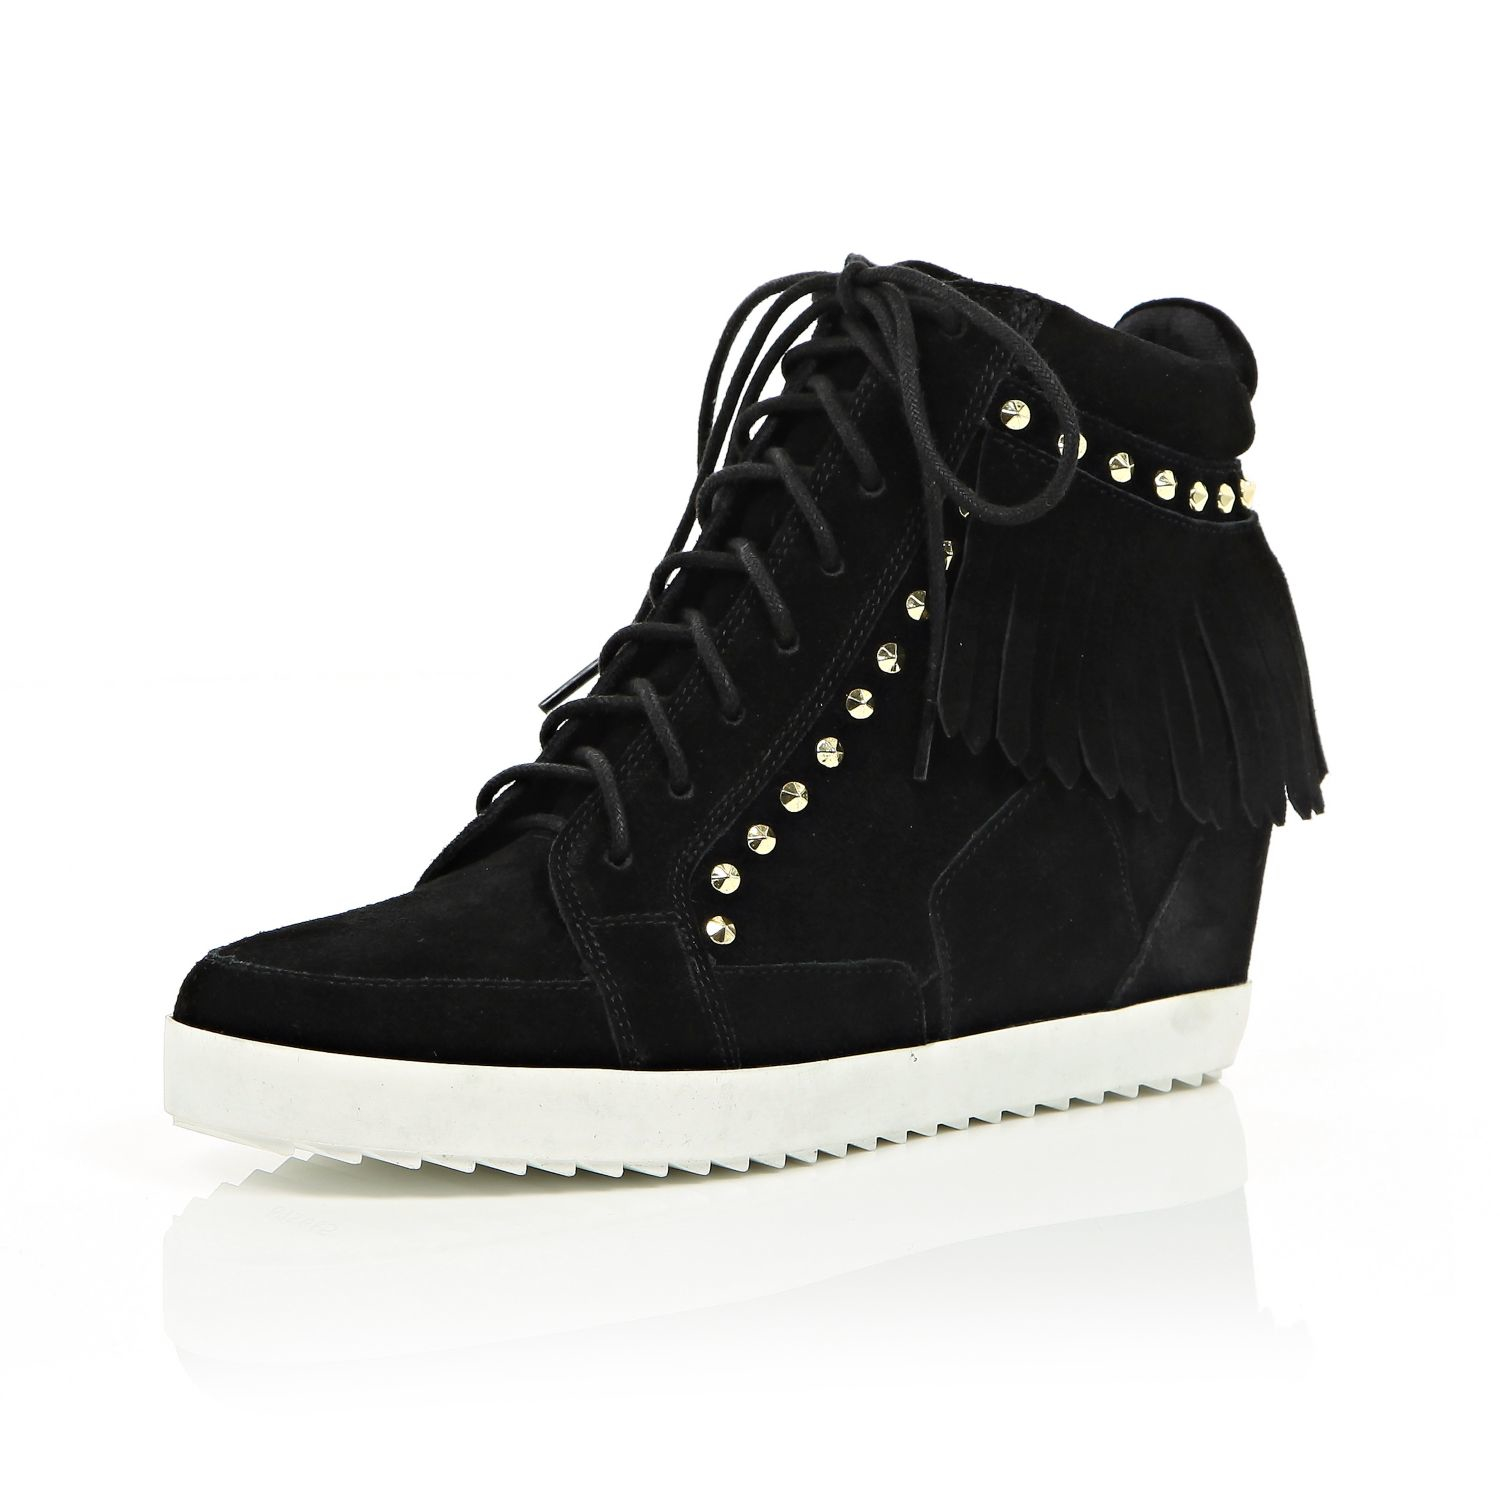 1013f7914ea4 River Island Black Suede Fringed High Top Wedge Trainers in Black - Lyst